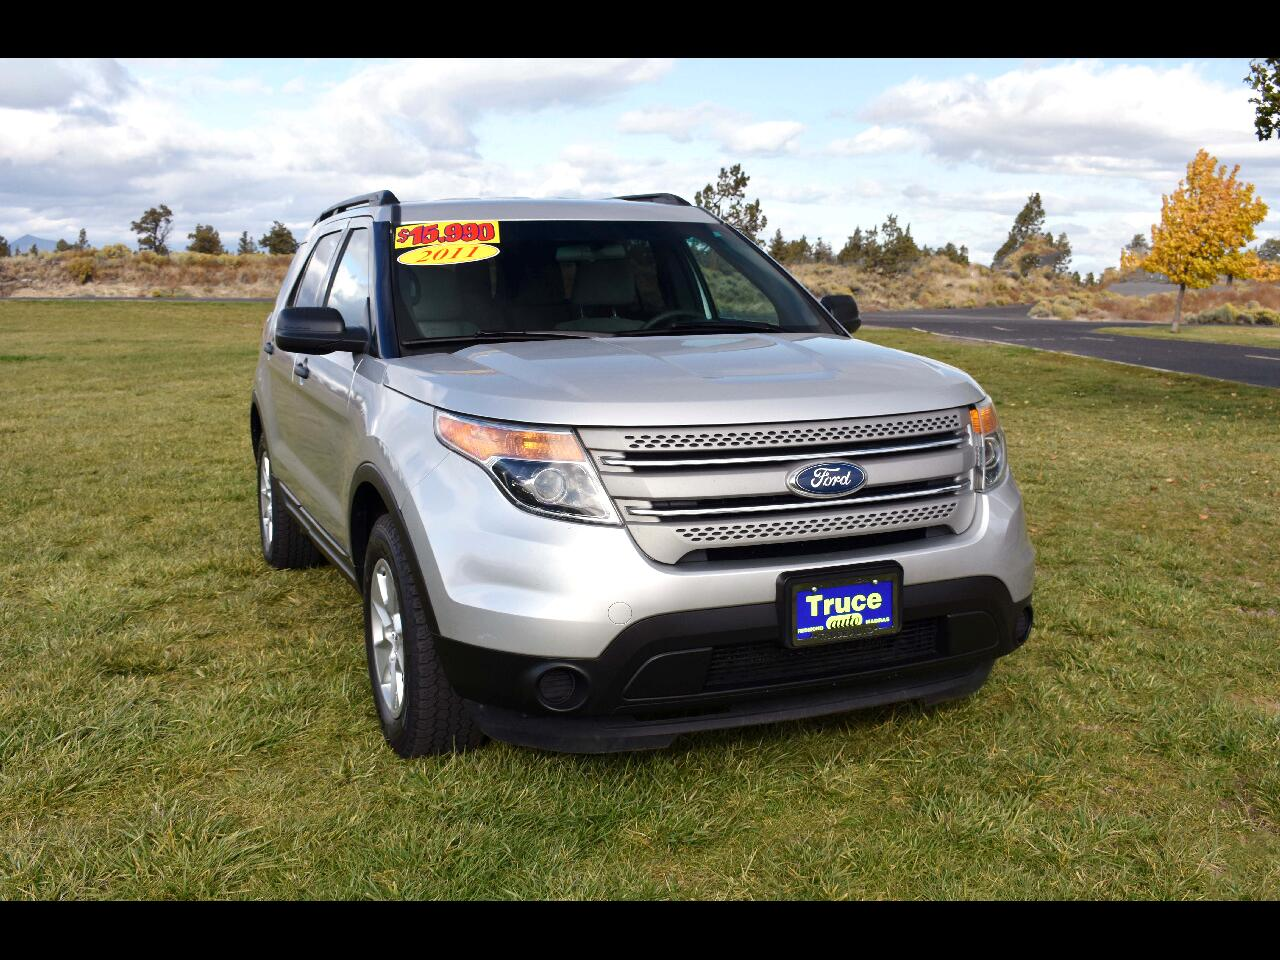 2011 Ford Explorer 4WD 4dr**LOW MILES** W/3RD ROW**